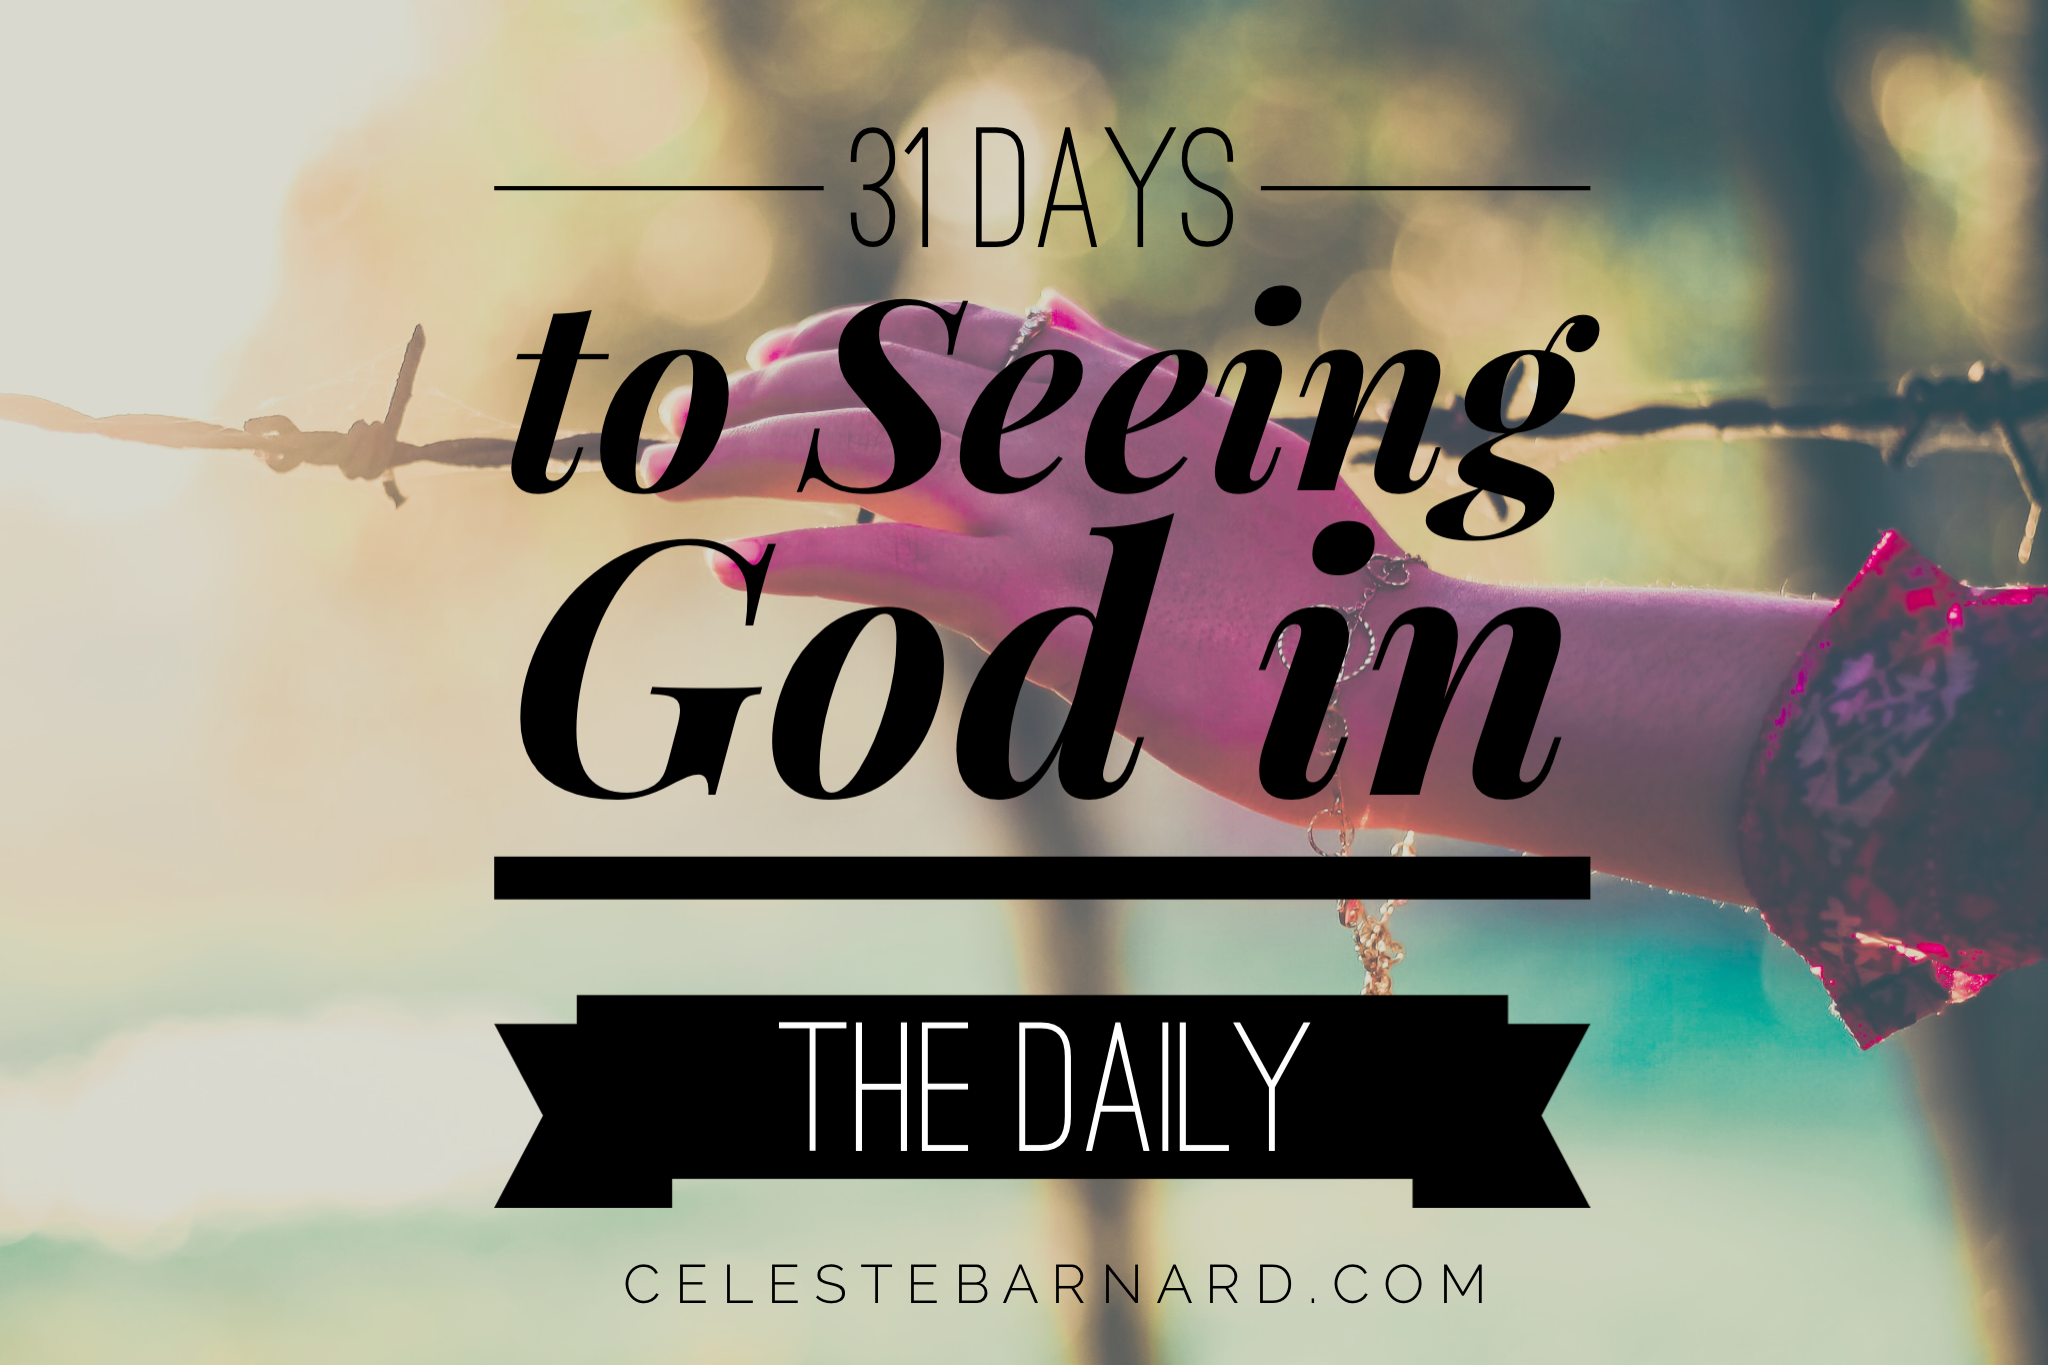 31 Days to Seeing God in the Daily